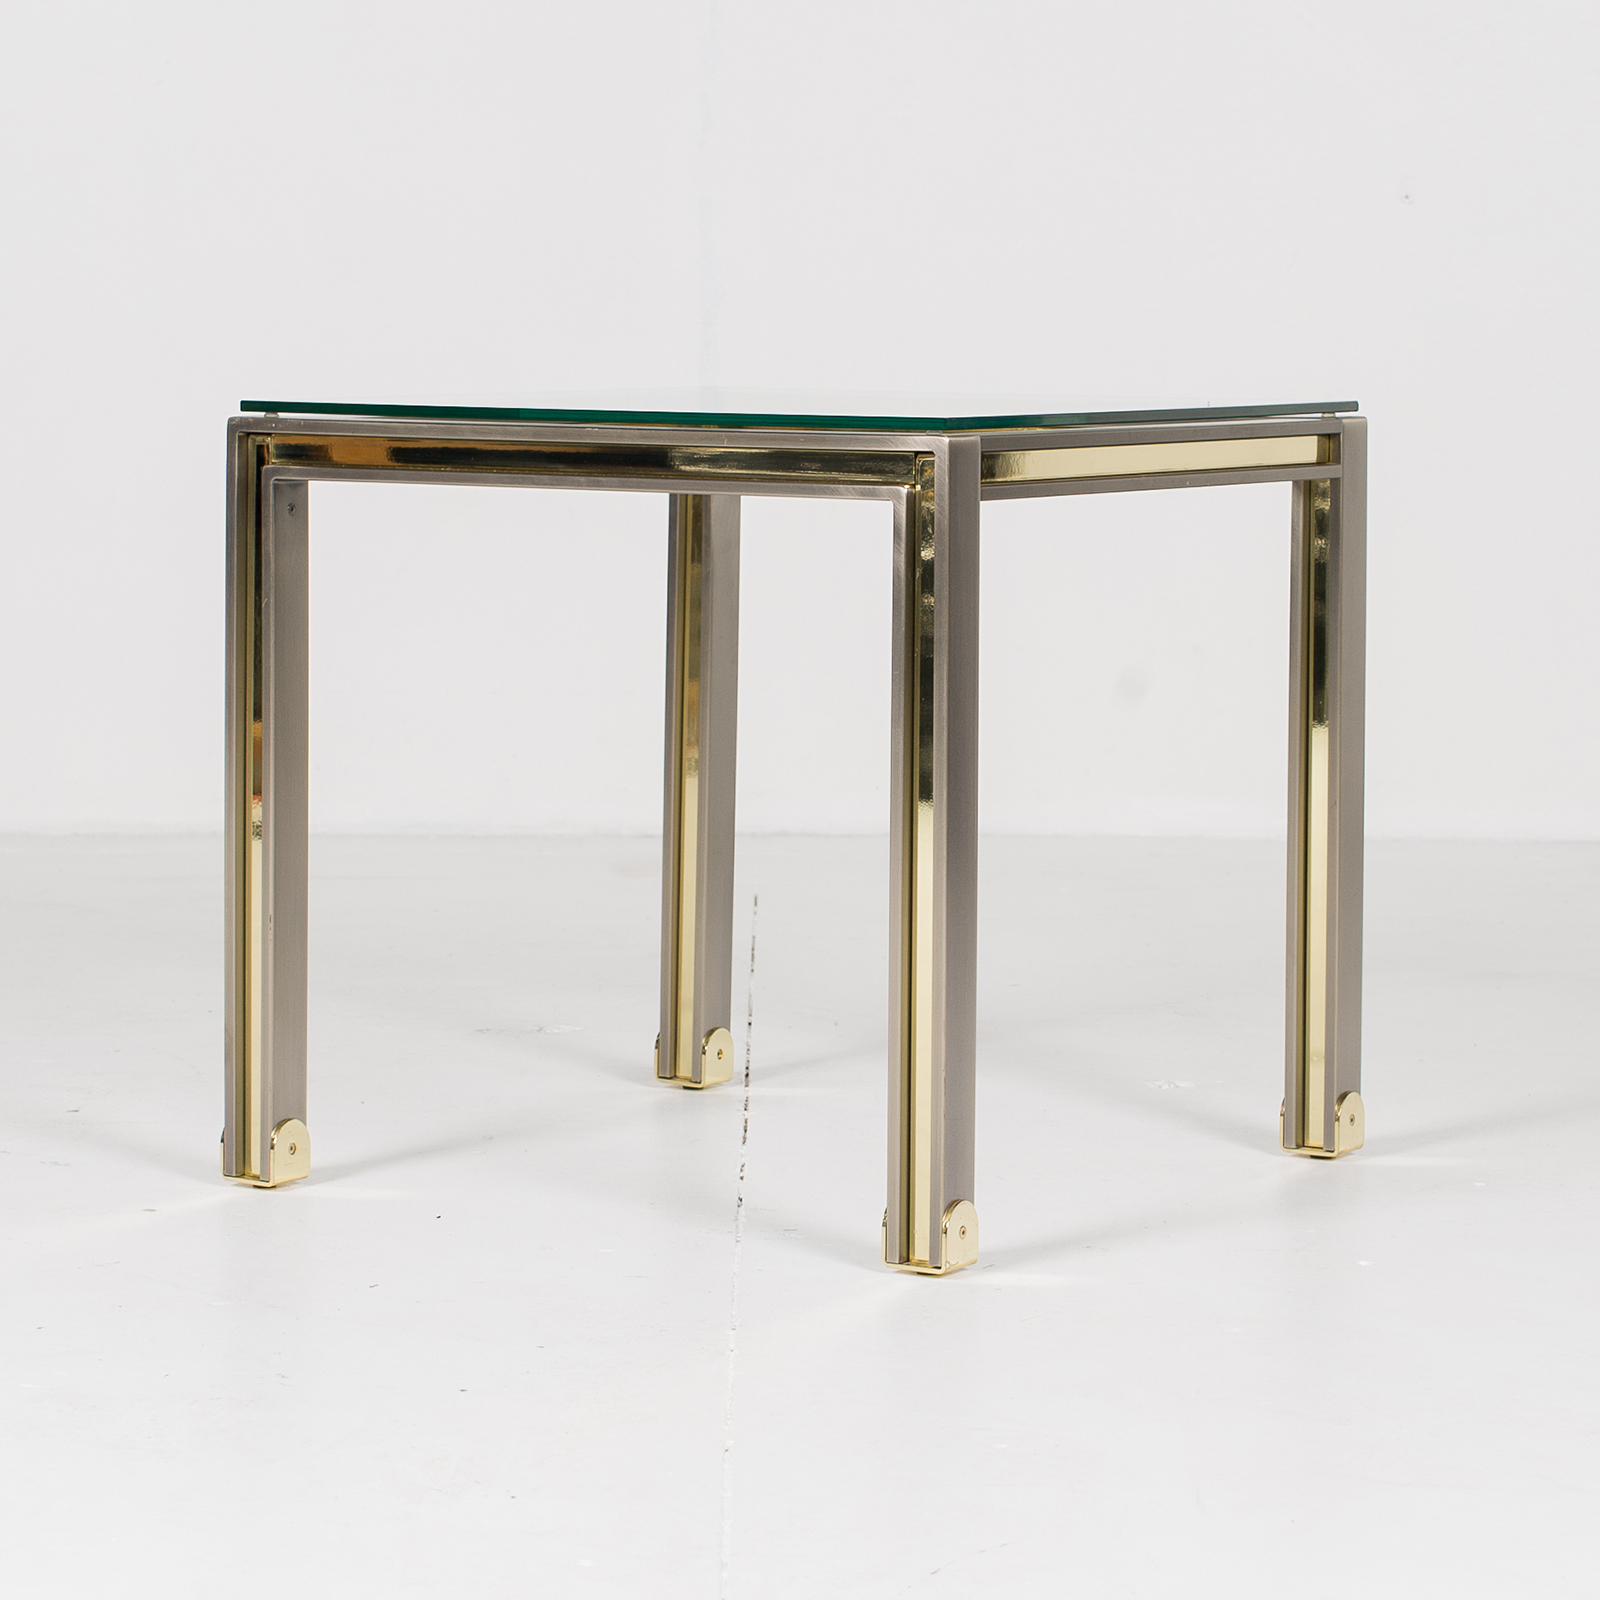 Side Table In Chrome And Brass By Romeo Rega, 1960s, Italy 2855